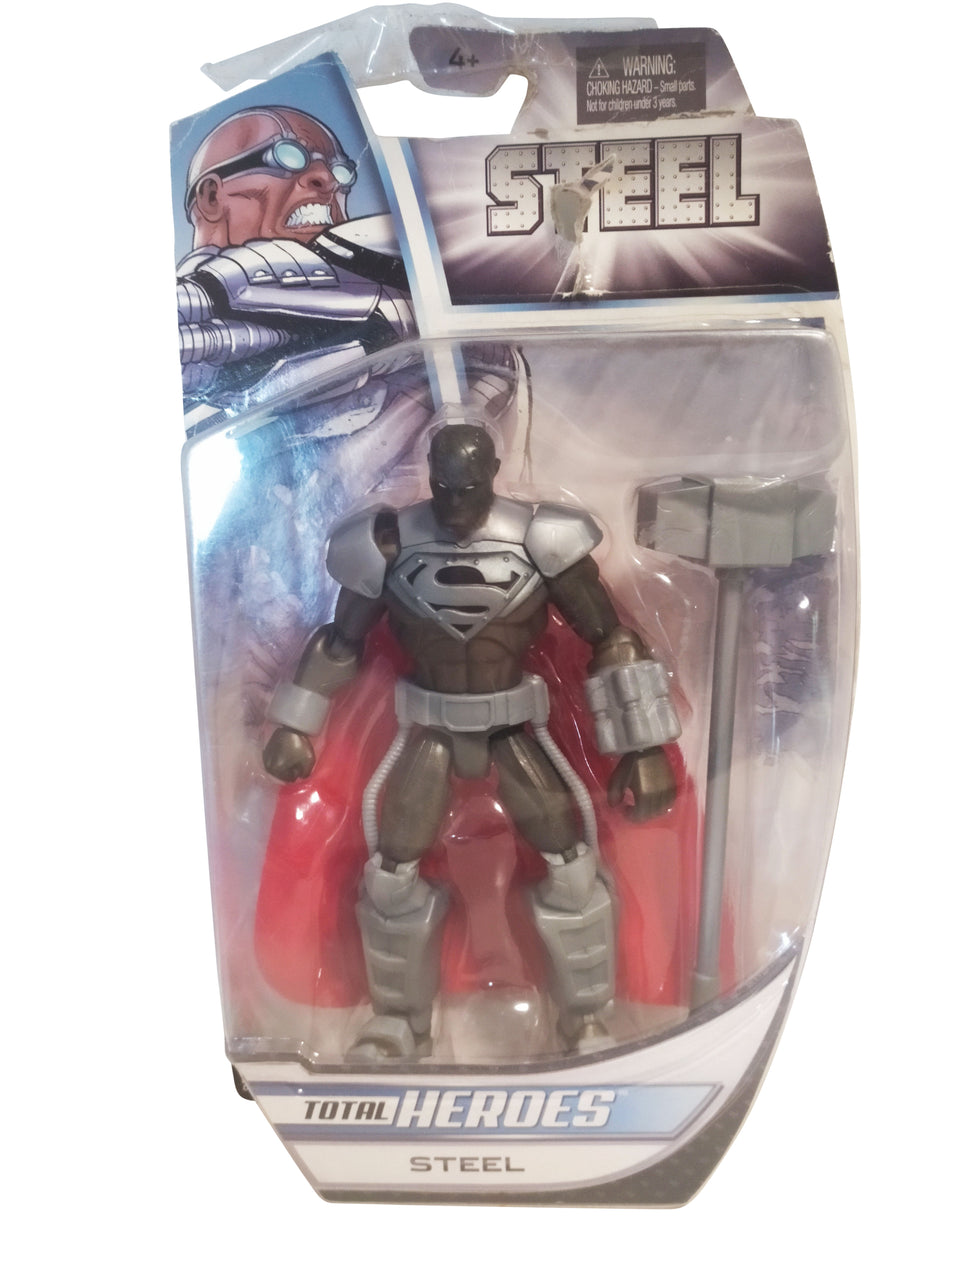 total heroes steel figure - mattel